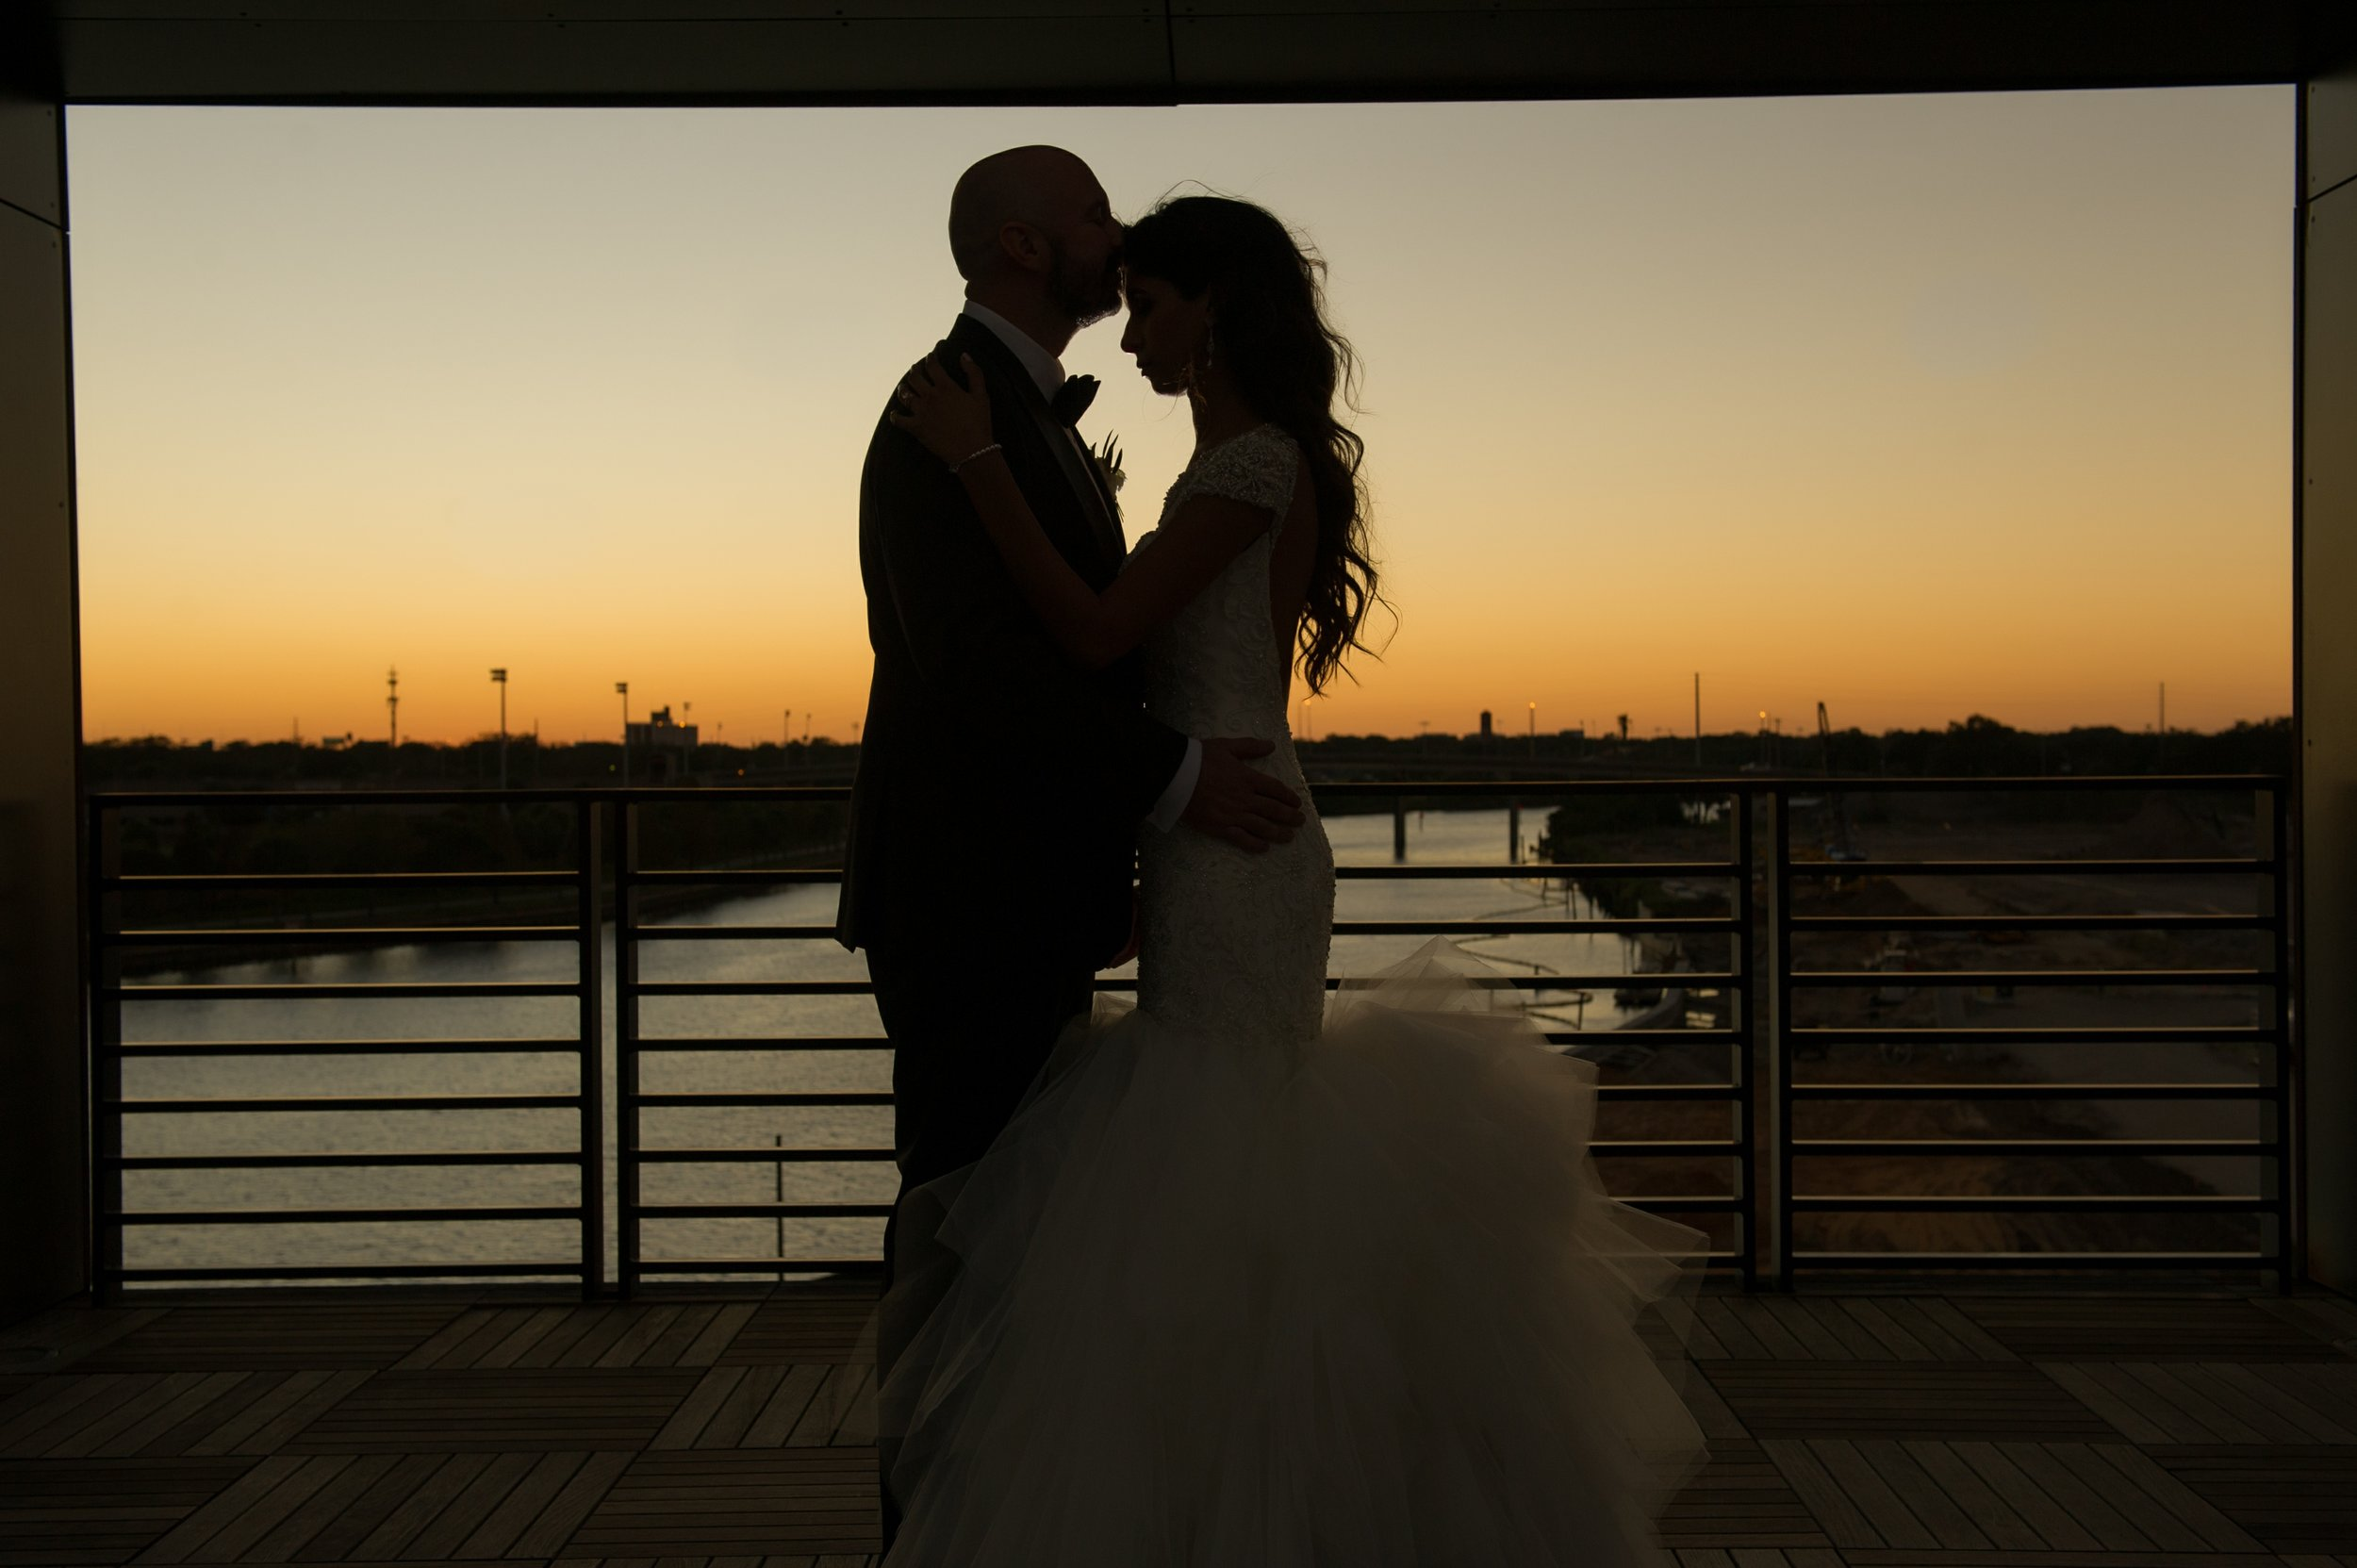 A Tampa sunset on the river provided the perfect backdrop for romantic photos.